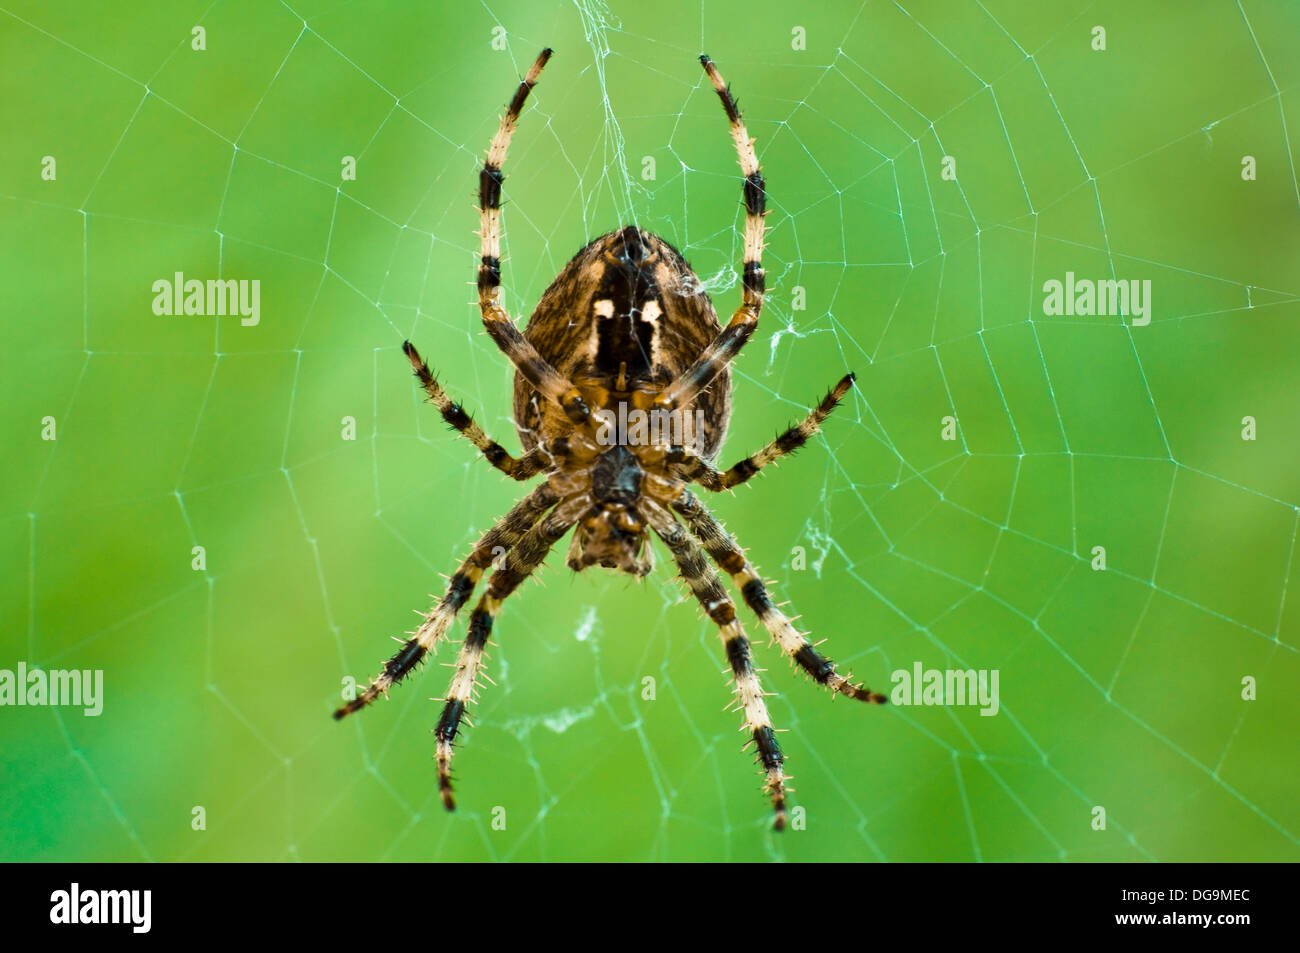 A Close up Macro Photograph of a Common Garden Orb Spider in its Web taken in the Autumn in the UK. ( One of a set of five - see description for further details ) - Stock Image